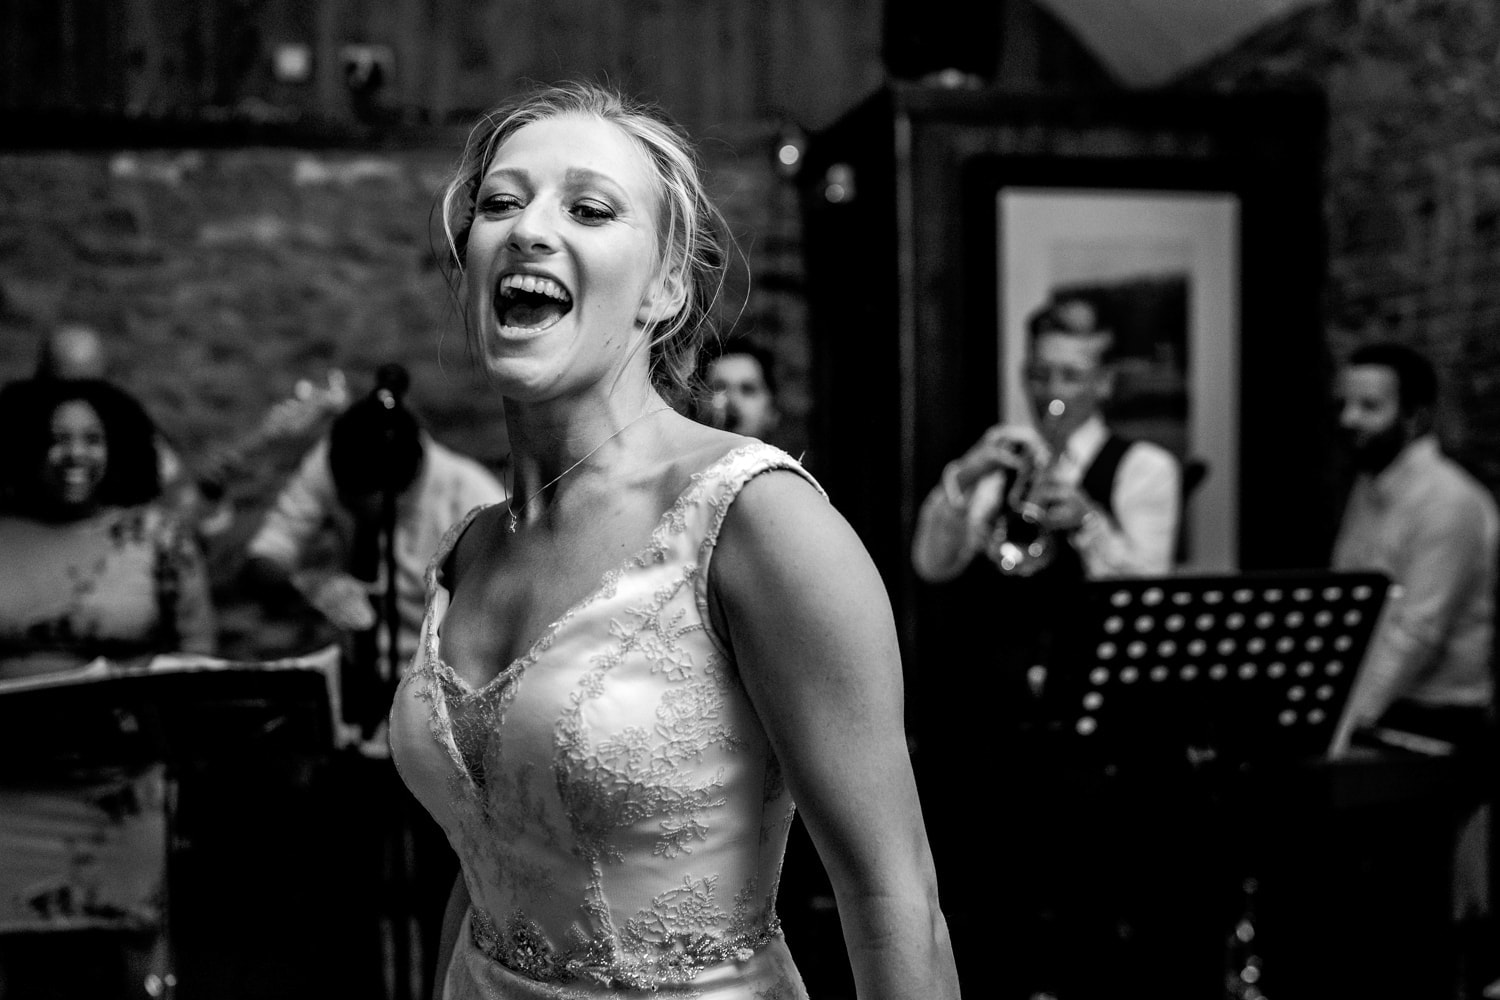 Dancing at The Old Stables Wedding